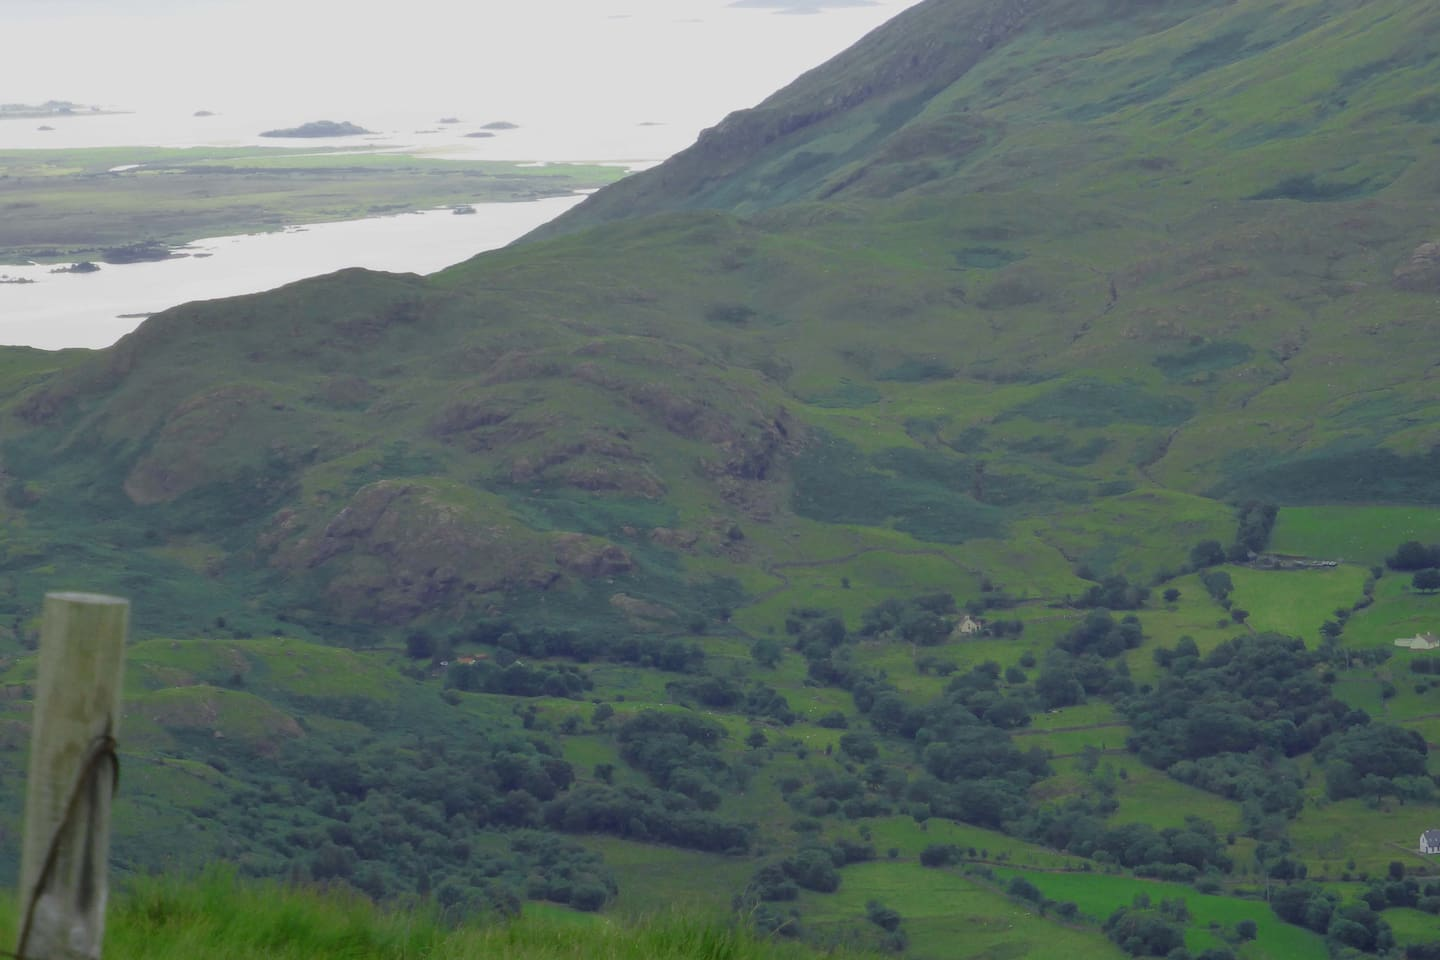 View of cottage and landscape from Ben Beg